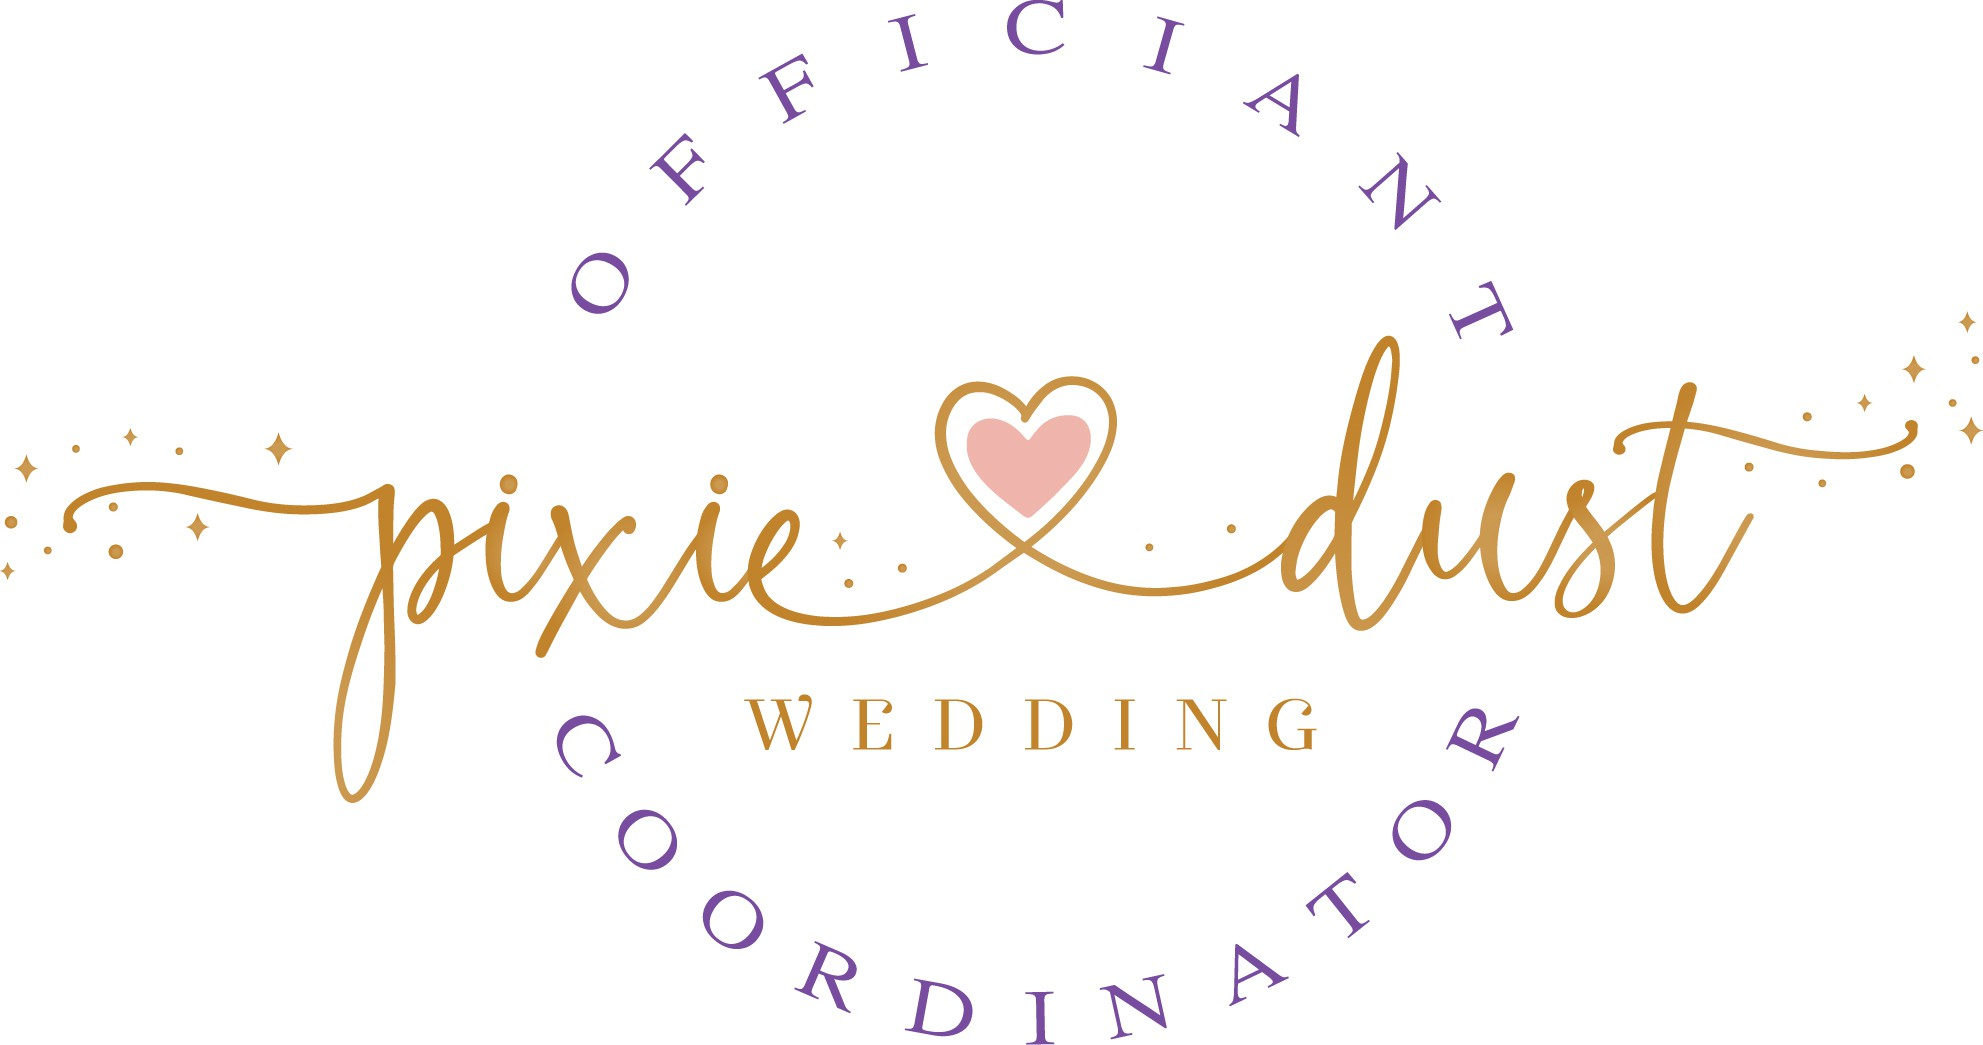 Wedding Officiant & Planner needs a elegant and magical logo